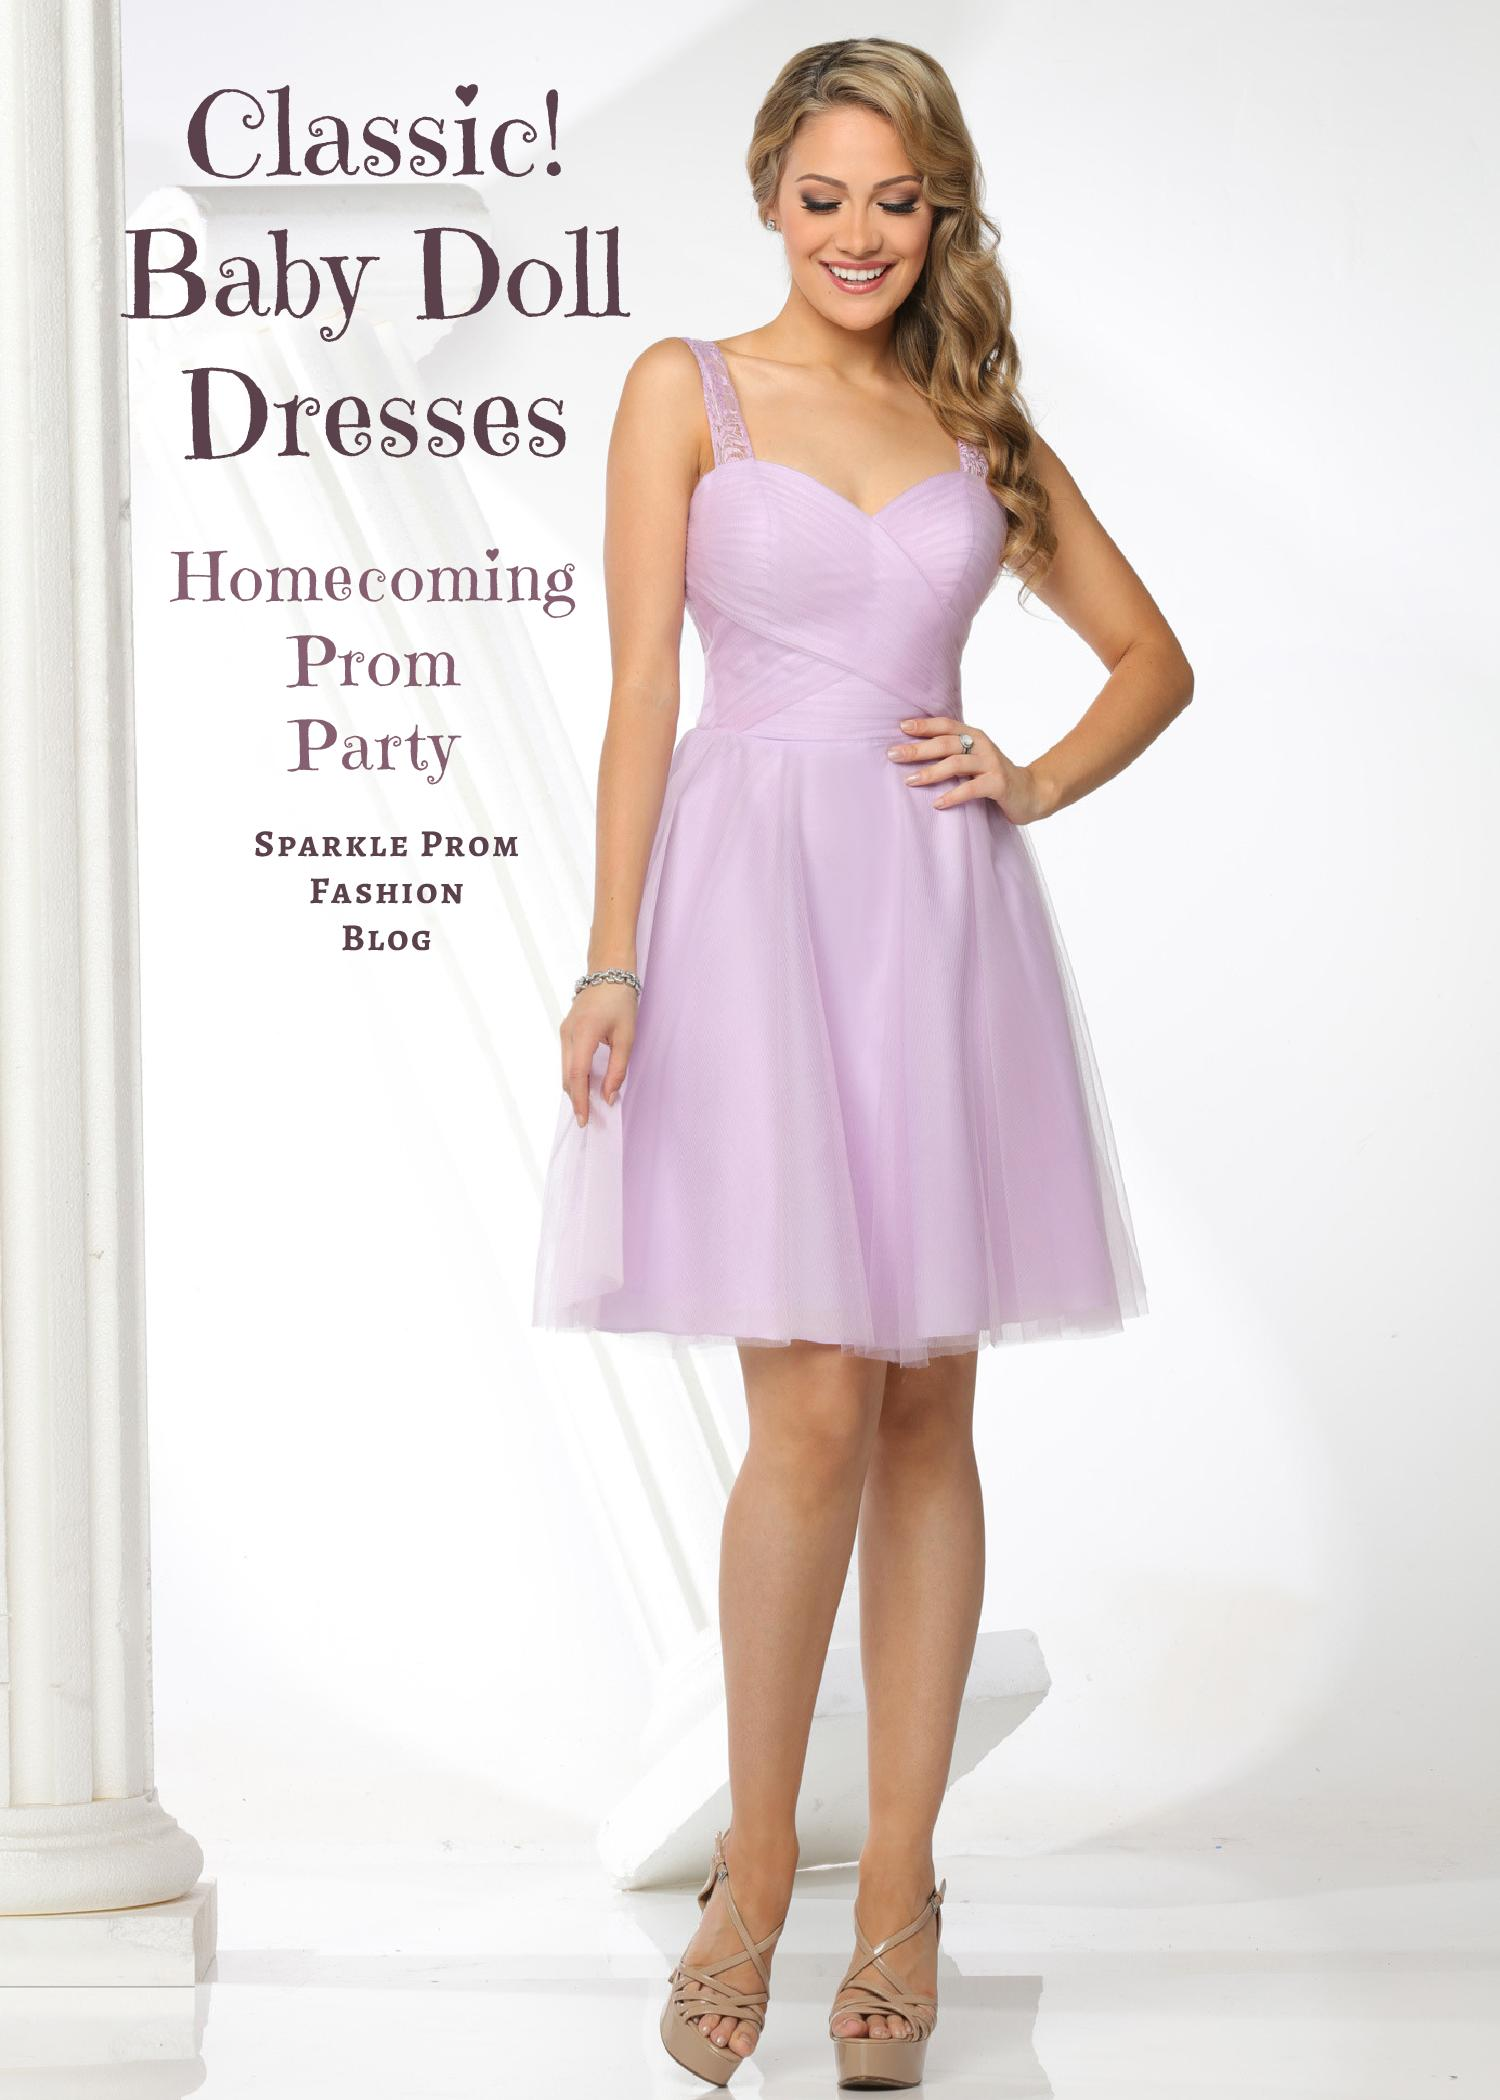 Babydoll Homecoming, Prom & Party Dresses – Sparkle Prom Fashion Blog